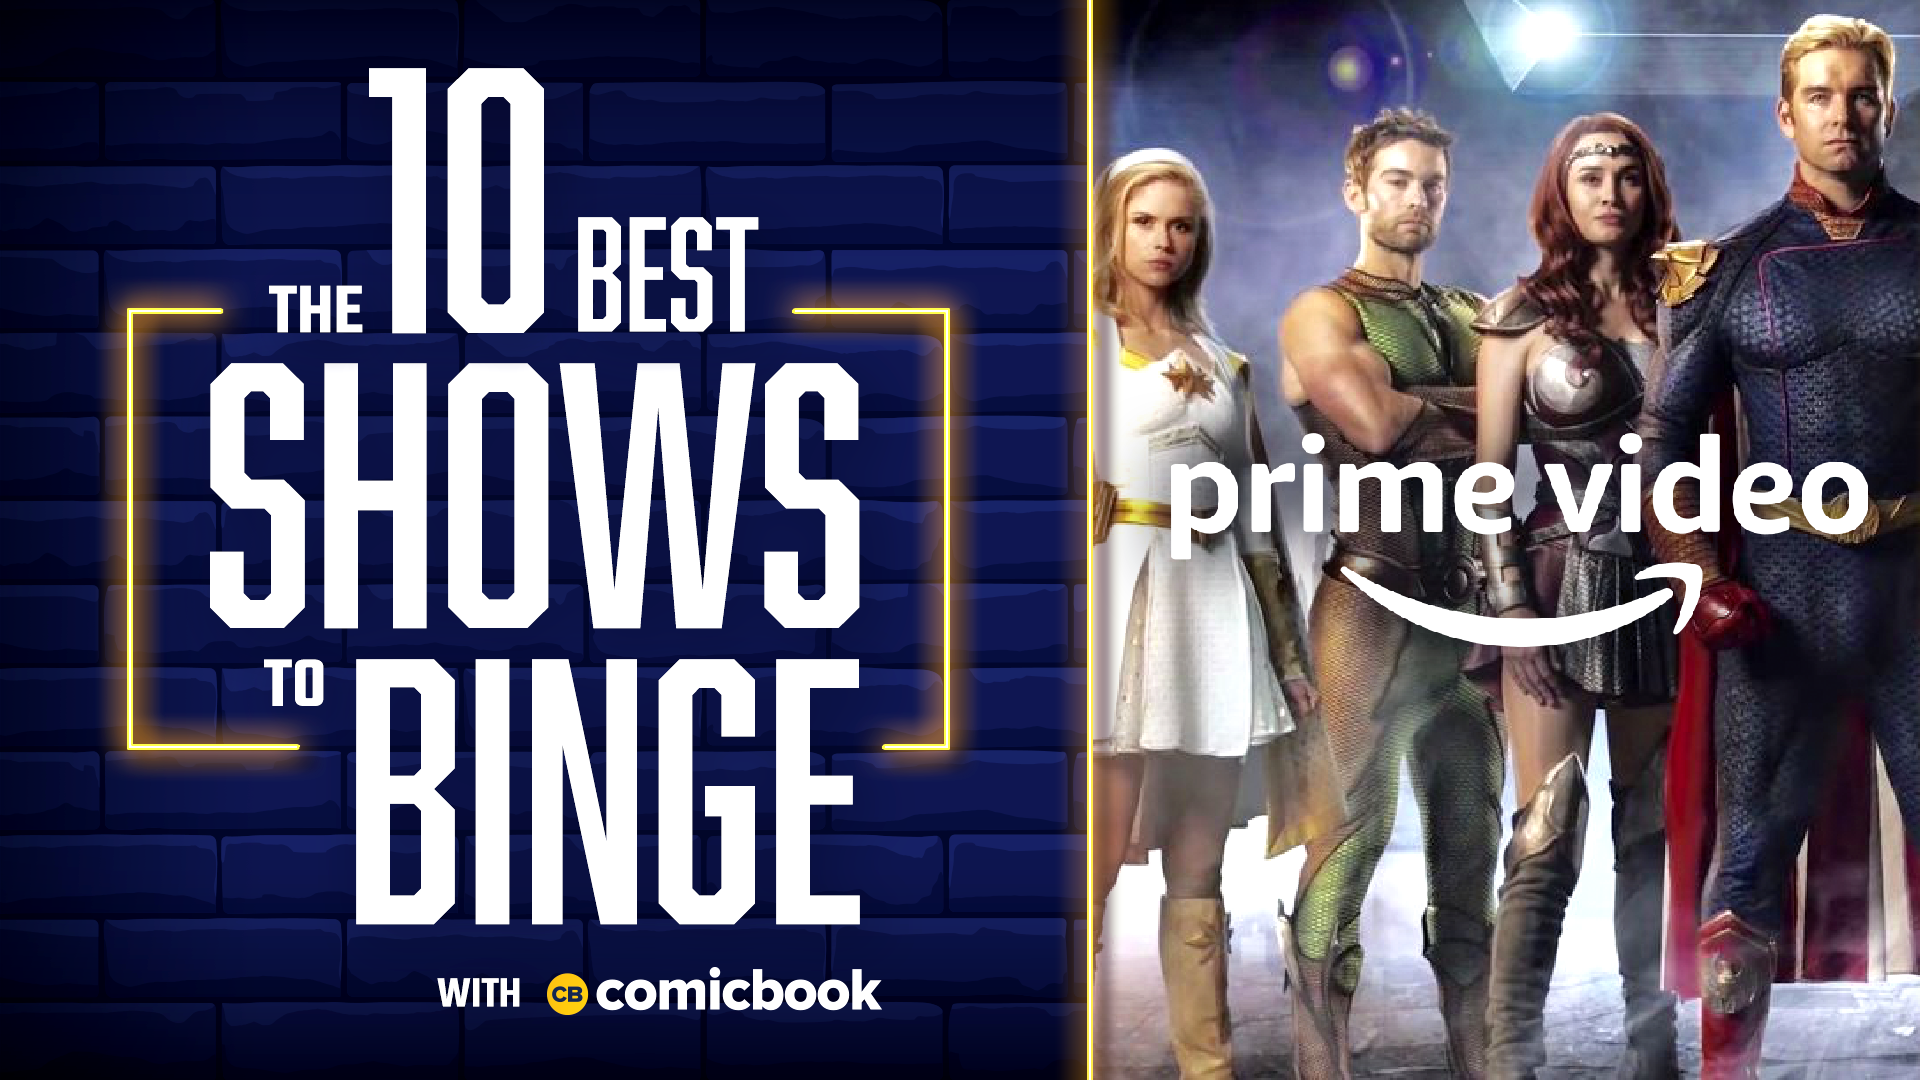 10 Best Shows to Binge on Amazon Prime